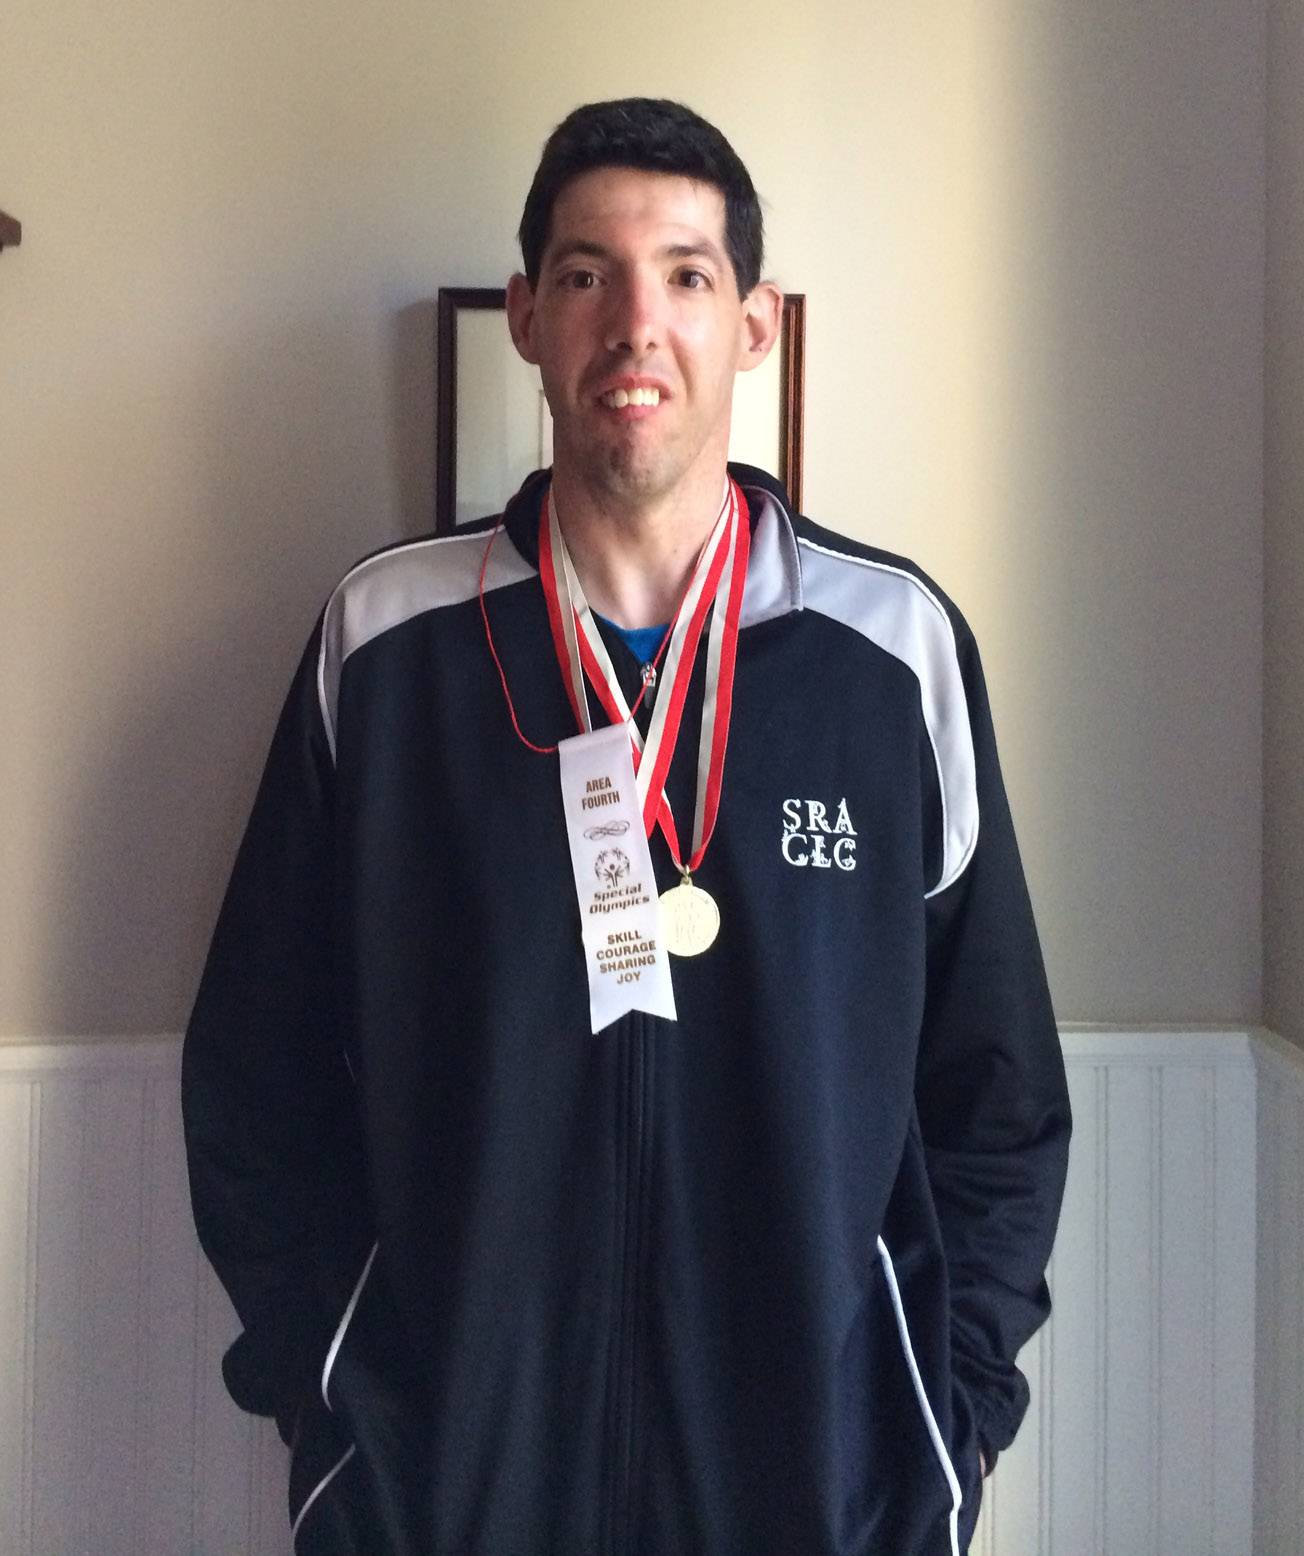 Last year, Special Olympics athlete Peter Hill of Lincolnshire traded softball for track and field. The move paid off, as Peter has earned a spot representing Illinois on the track in the upcoming Special Olympics 2014 USA Games.